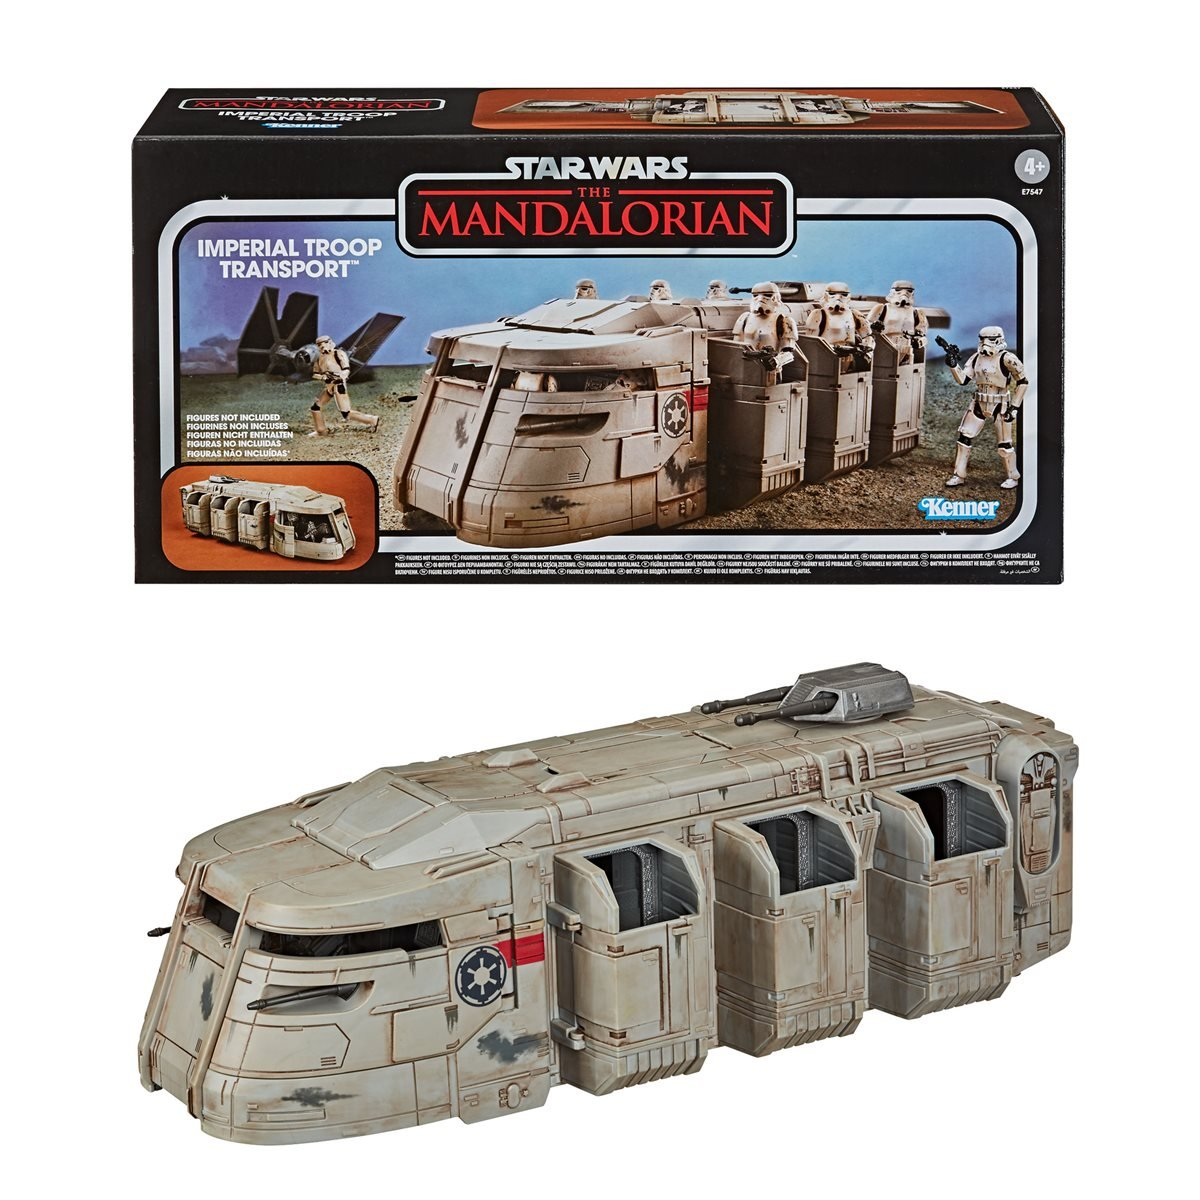 Star Wars The Vintage Collection The Mandalorian Imperial Troop Transport Toy Ve